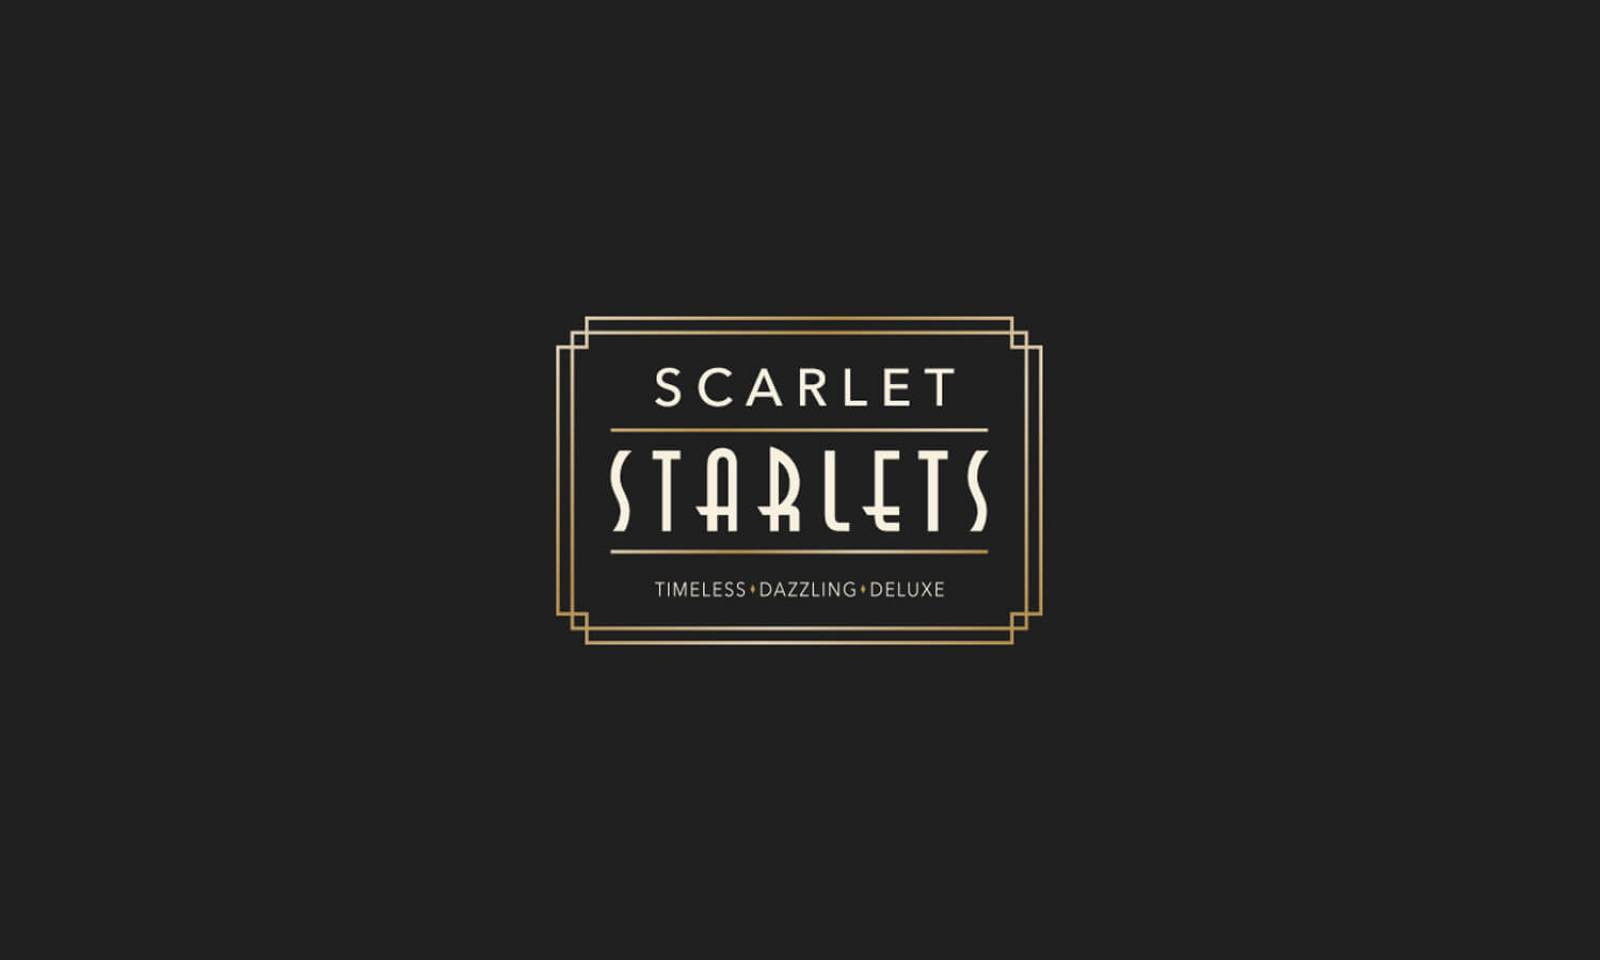 Scarlet-starlets-3-logo-corporate-identity-agency-graphic-design-canterbury.jpg